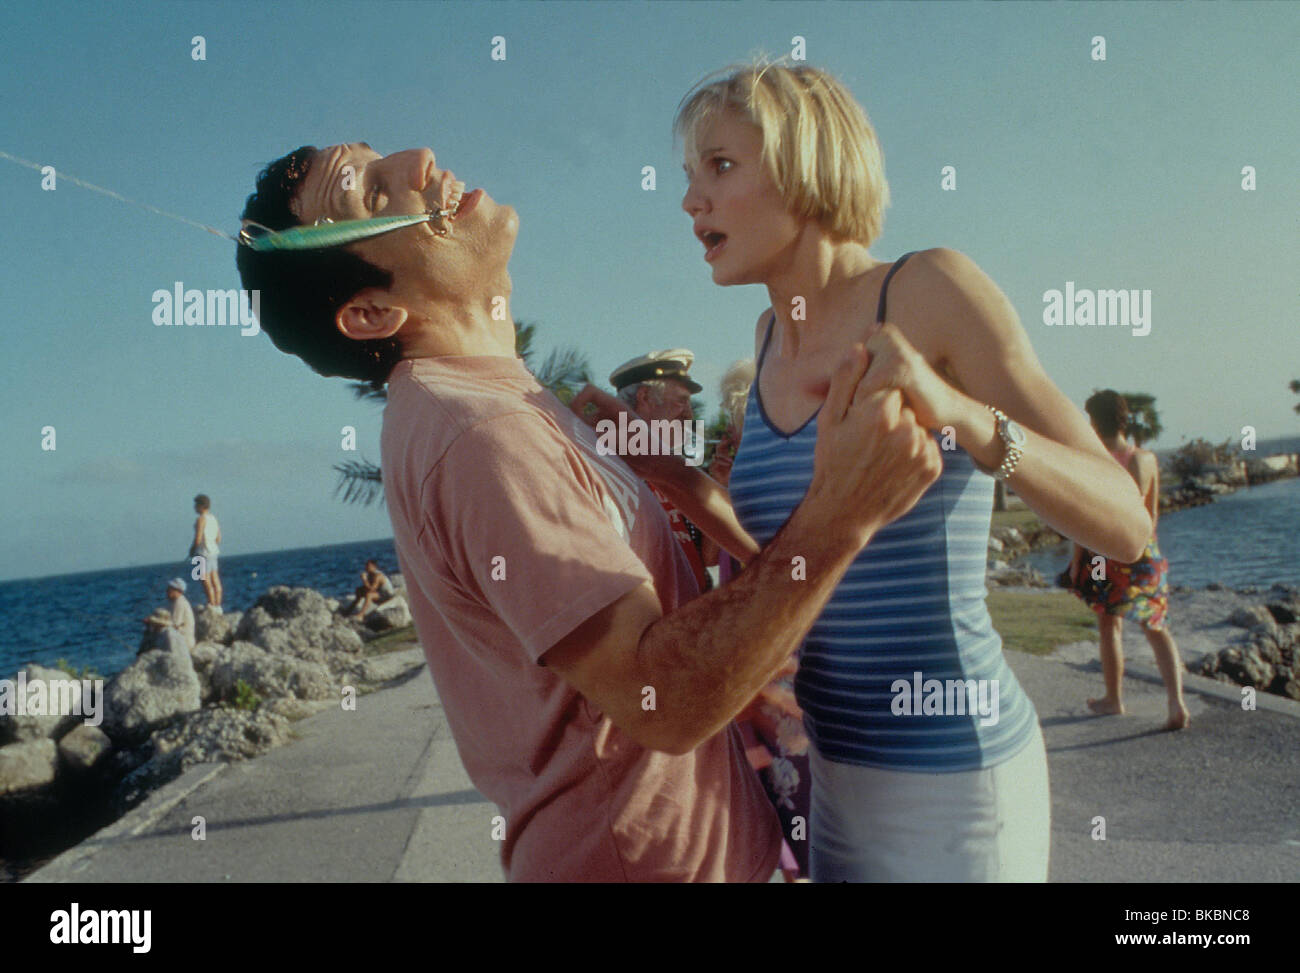 THERE'S SOMETHING ABOUT MARY BEN STILLER, CAMERON DIAZ TSAM 073 ORIGINAL 35MM - Stock Image